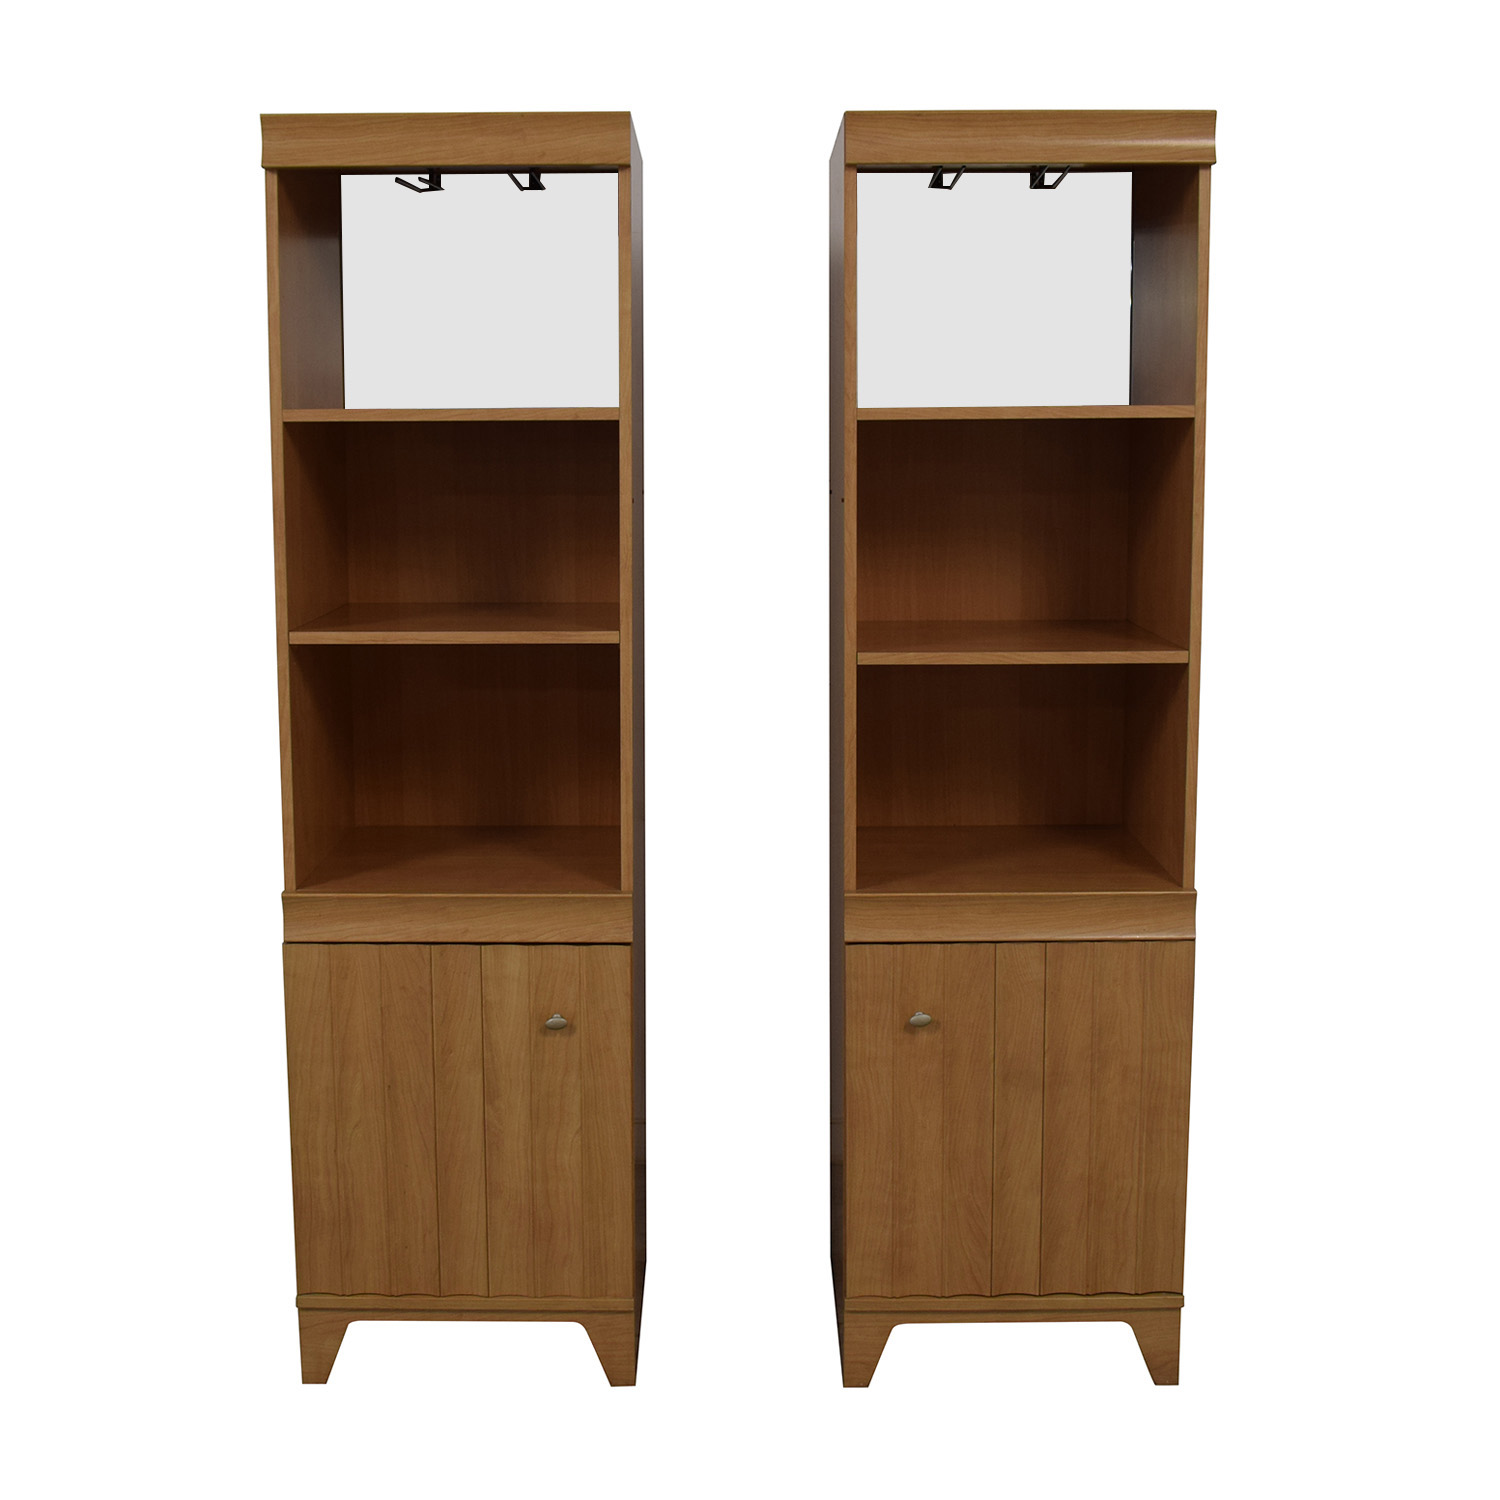 Italian Made Mirrored Bookcases / Storage